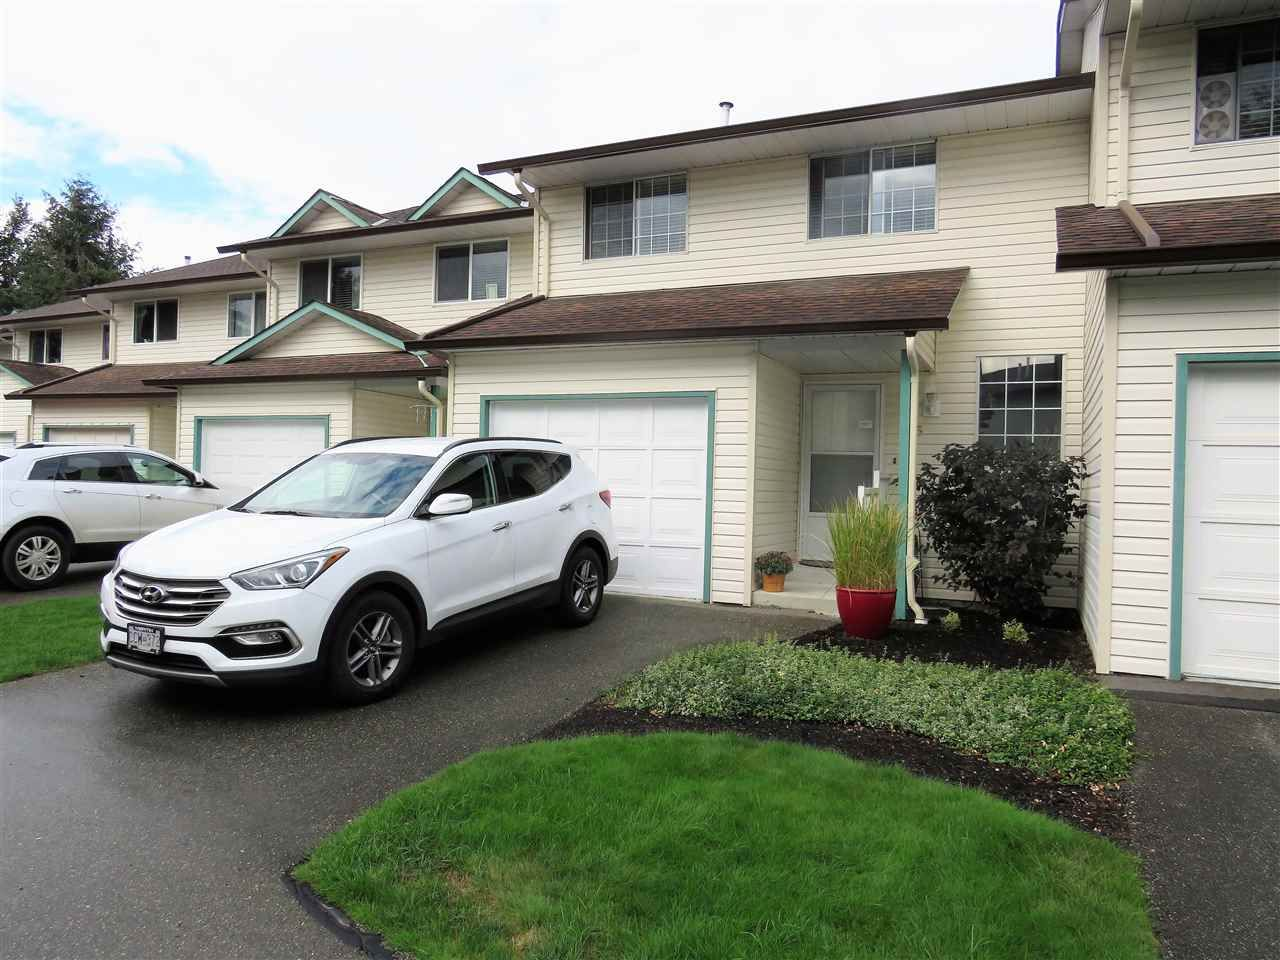 """Main Photo: 5 45640 STOREY Avenue in Sardis: Sardis West Vedder Rd Townhouse for sale in """"WHISPERING PINES"""" : MLS®# R2306187"""